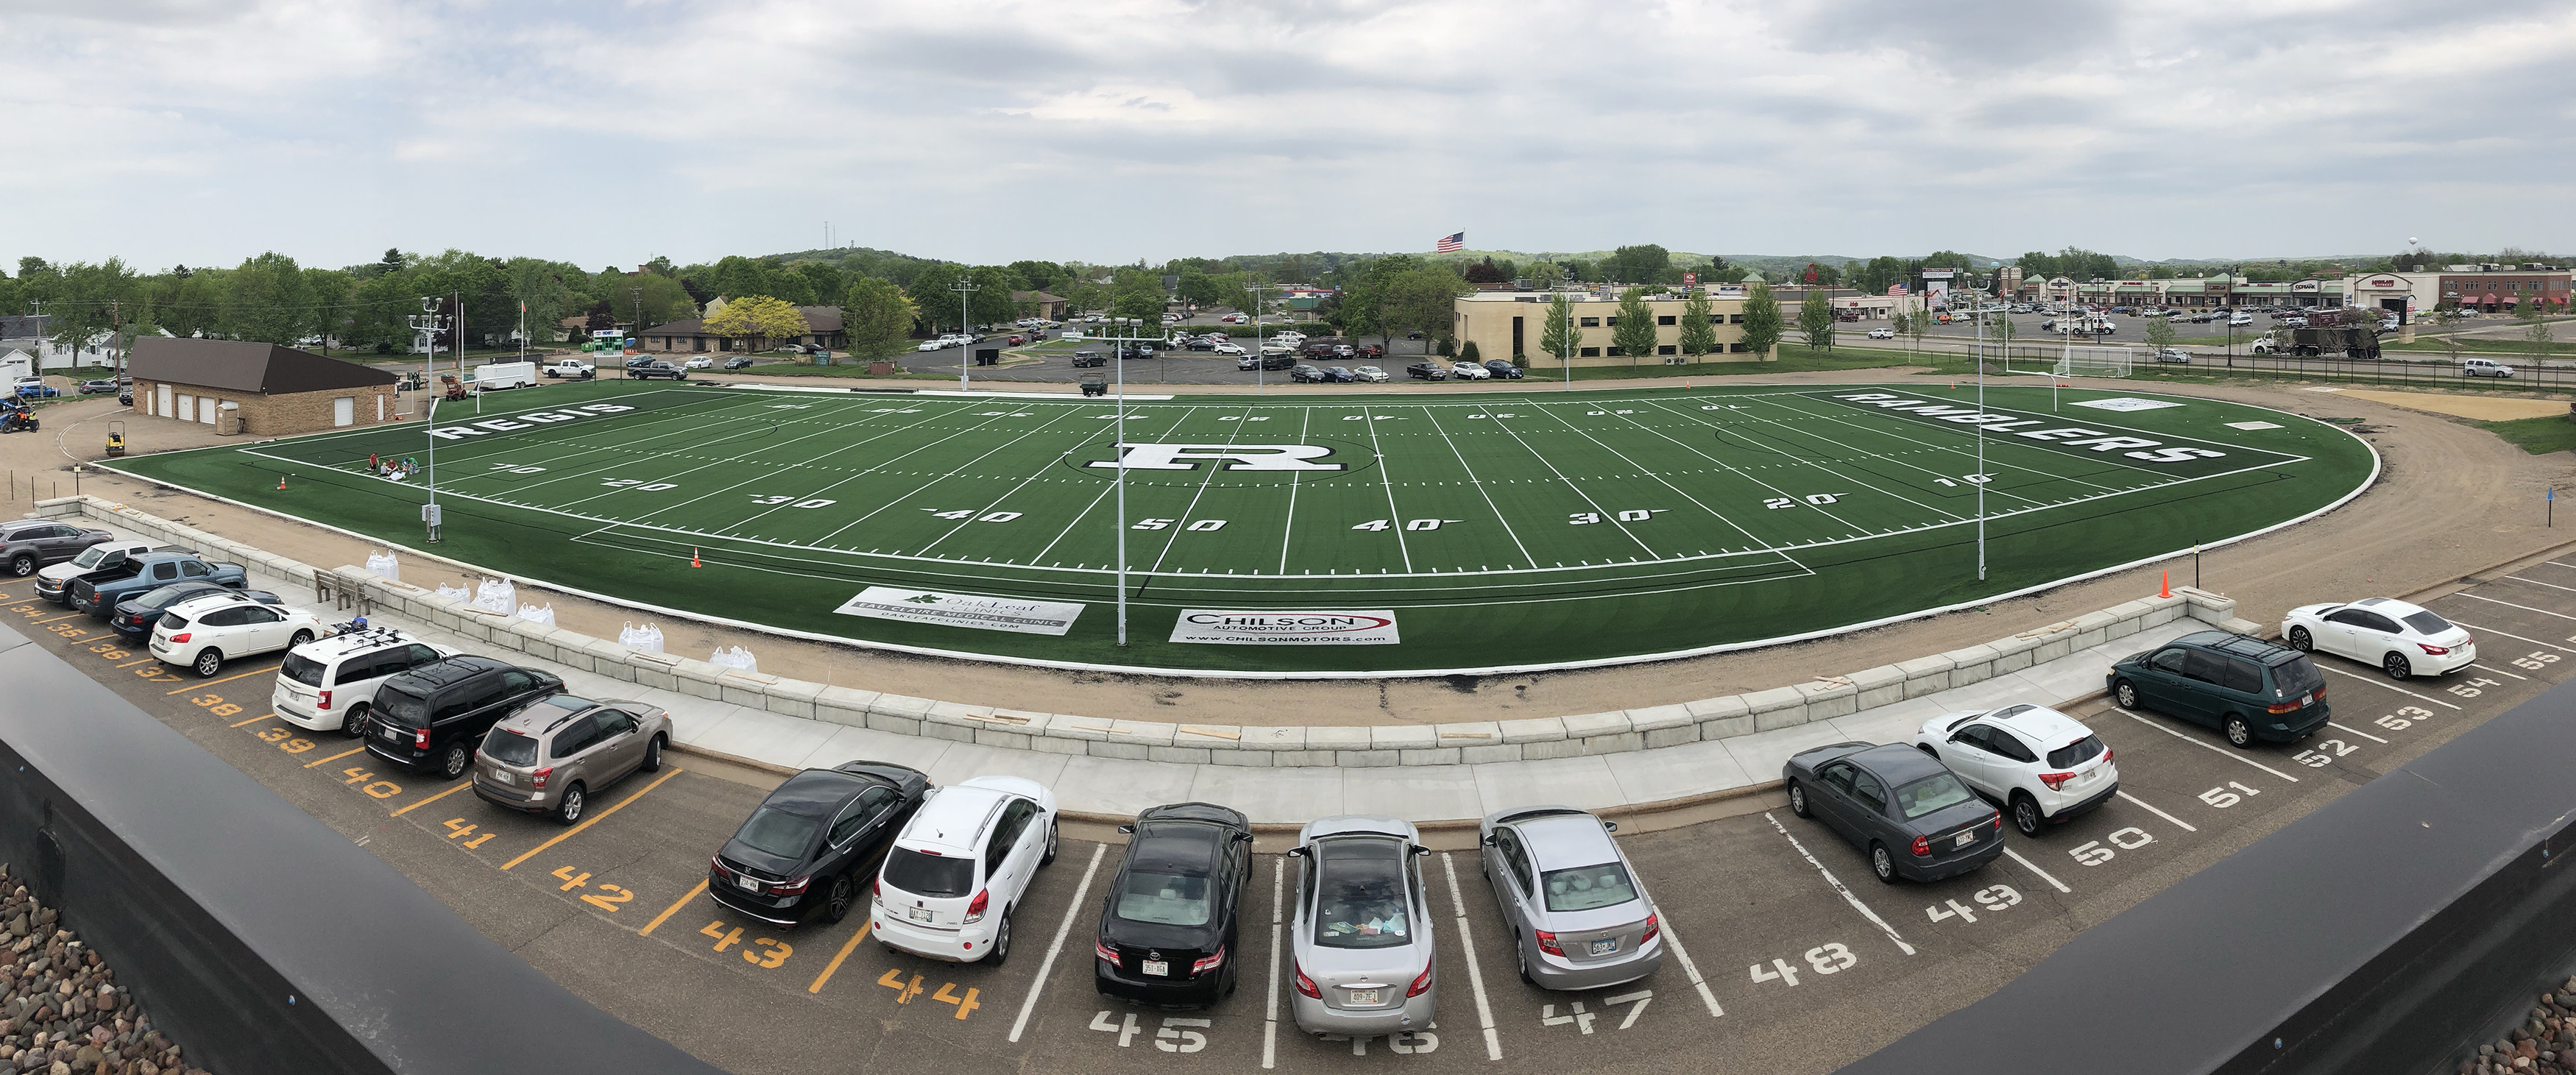 First athletic event to be held on new turf